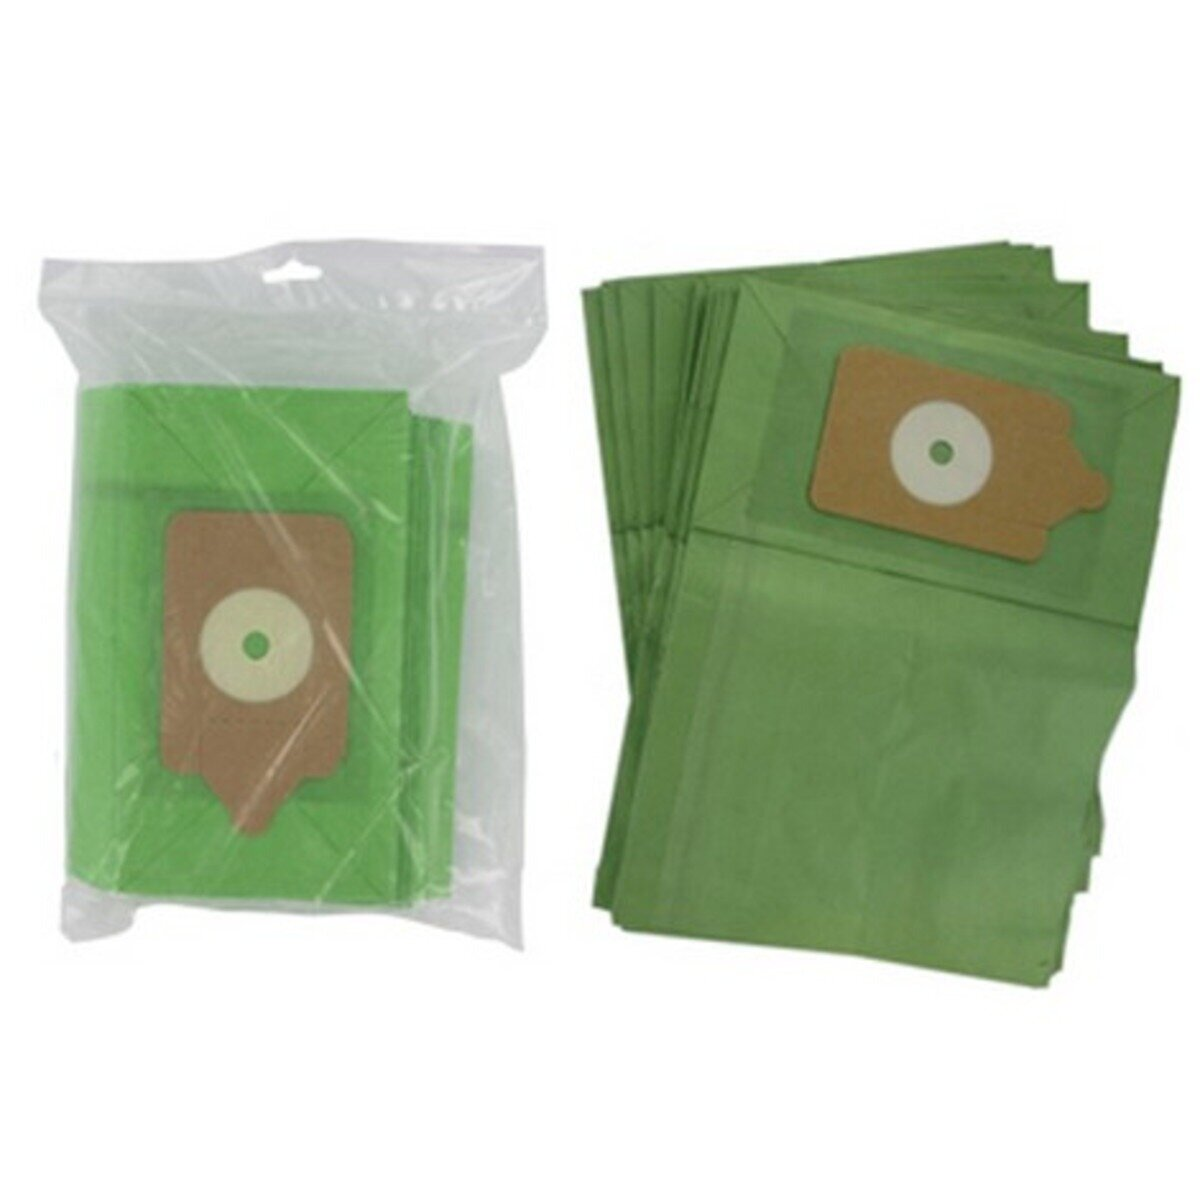 Plain Packed Numatic 200 / Henry 1B/C Paper Bags (Pack of 10)